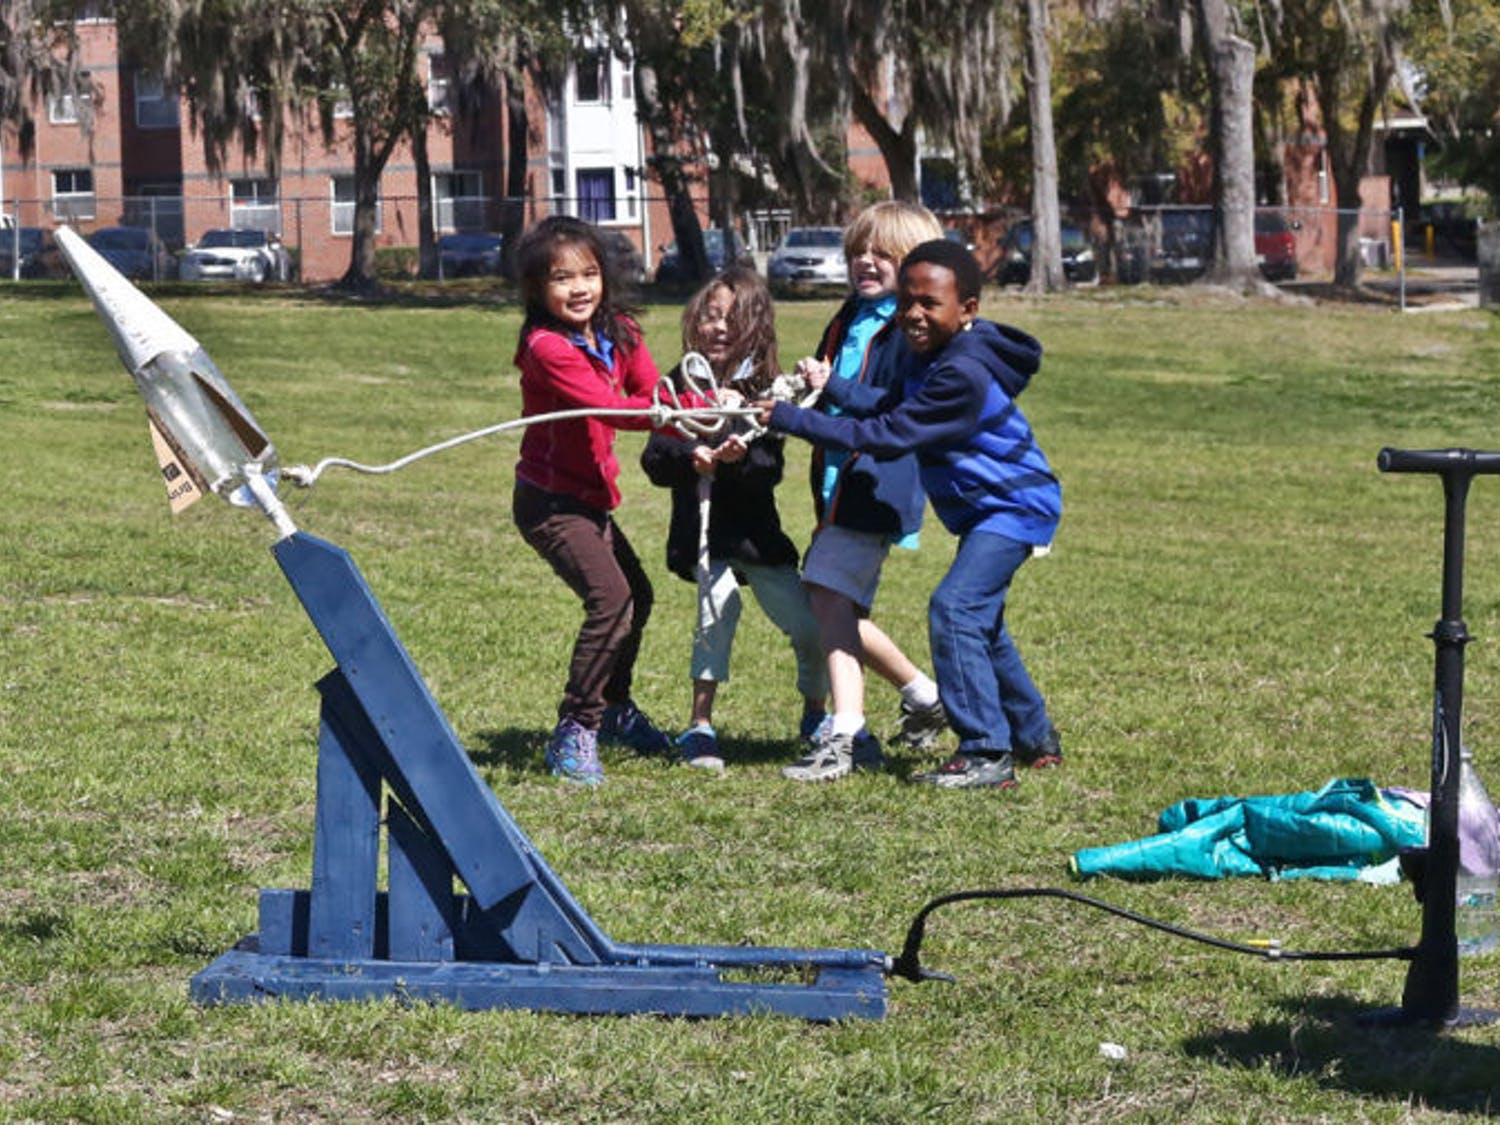 Second and third graders from Idylwild Elementary School launch bottle rockets on Flavet Field on Thursday morning. The American Institute of Aeronautics and Astronautics at UF assisted the students in building the rockets and launching them for the field trip.